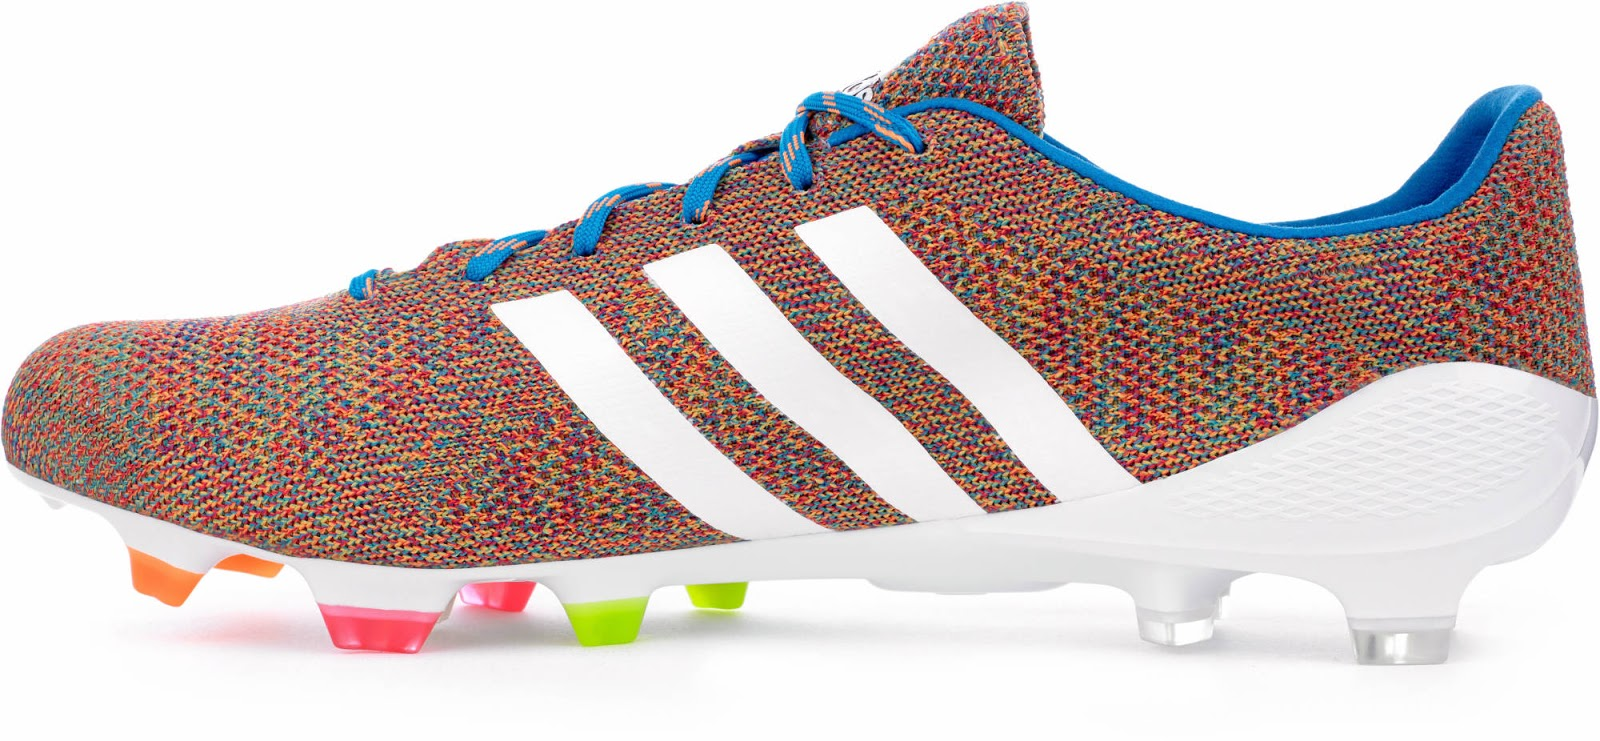 new soccer boots 2014 adidas